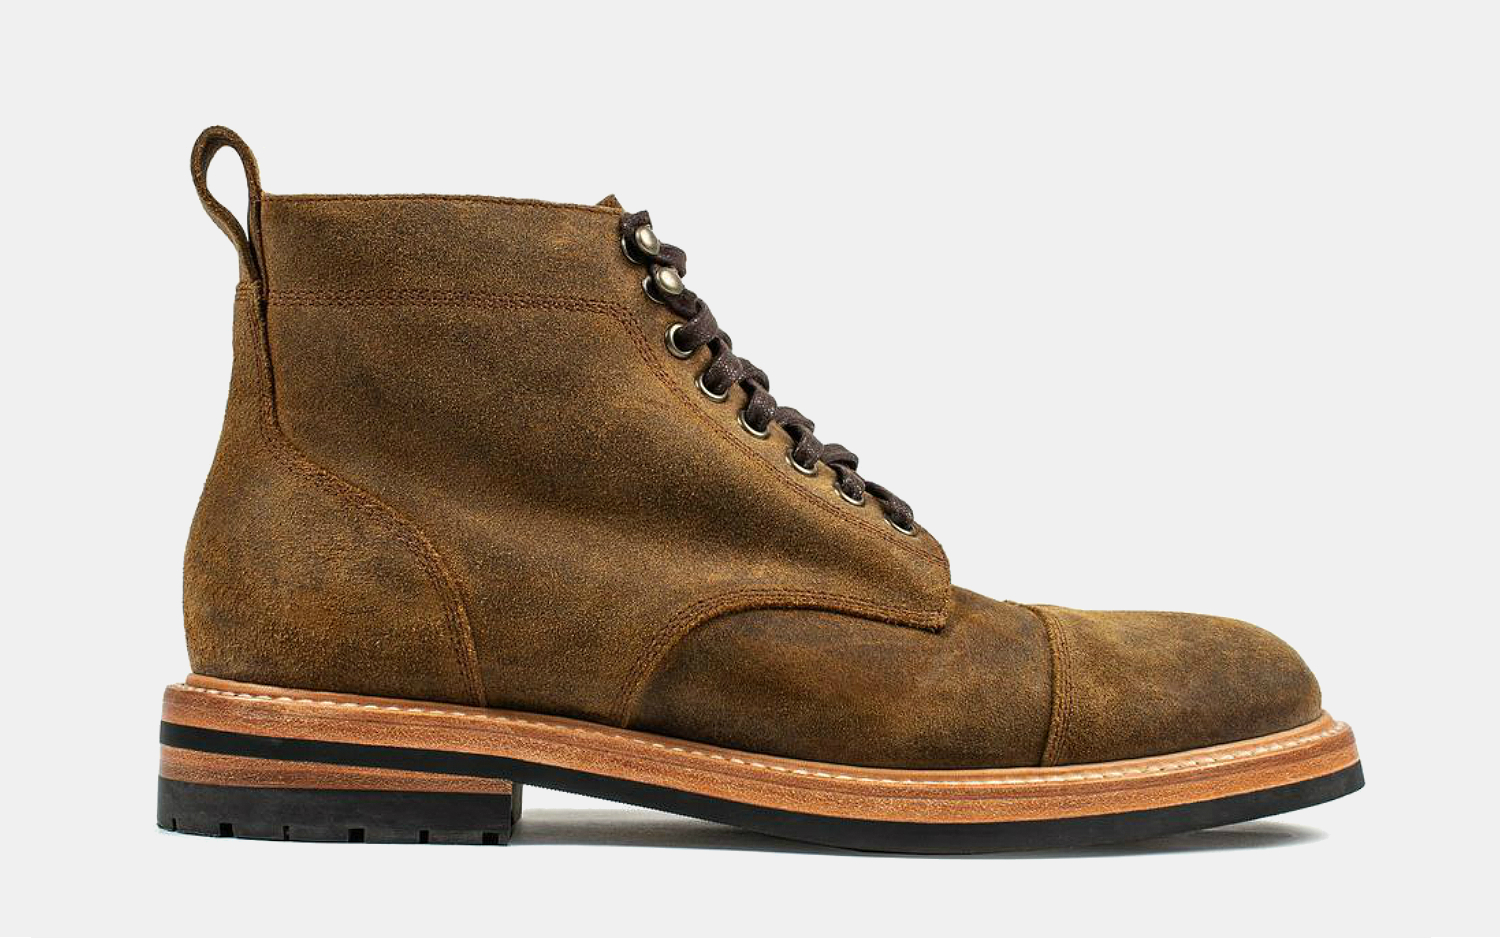 Taylor Stitch x Stetson Moto Boots in Waxed Suede